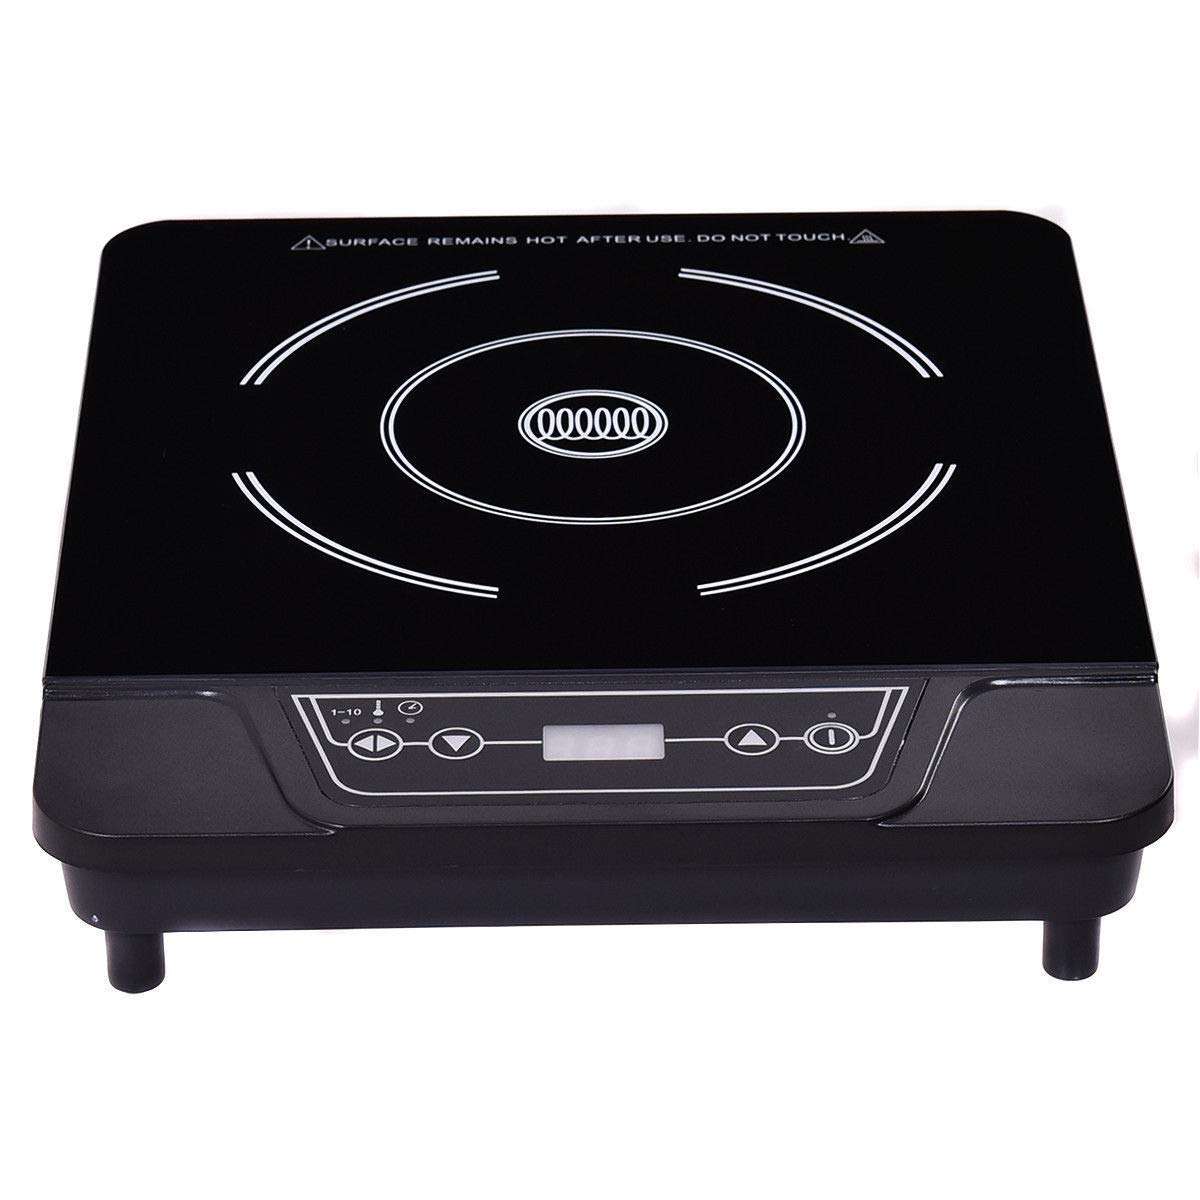 GHP 500W-1800W Plastic Body Countertop Induction Cooker with 10-Level Temperature